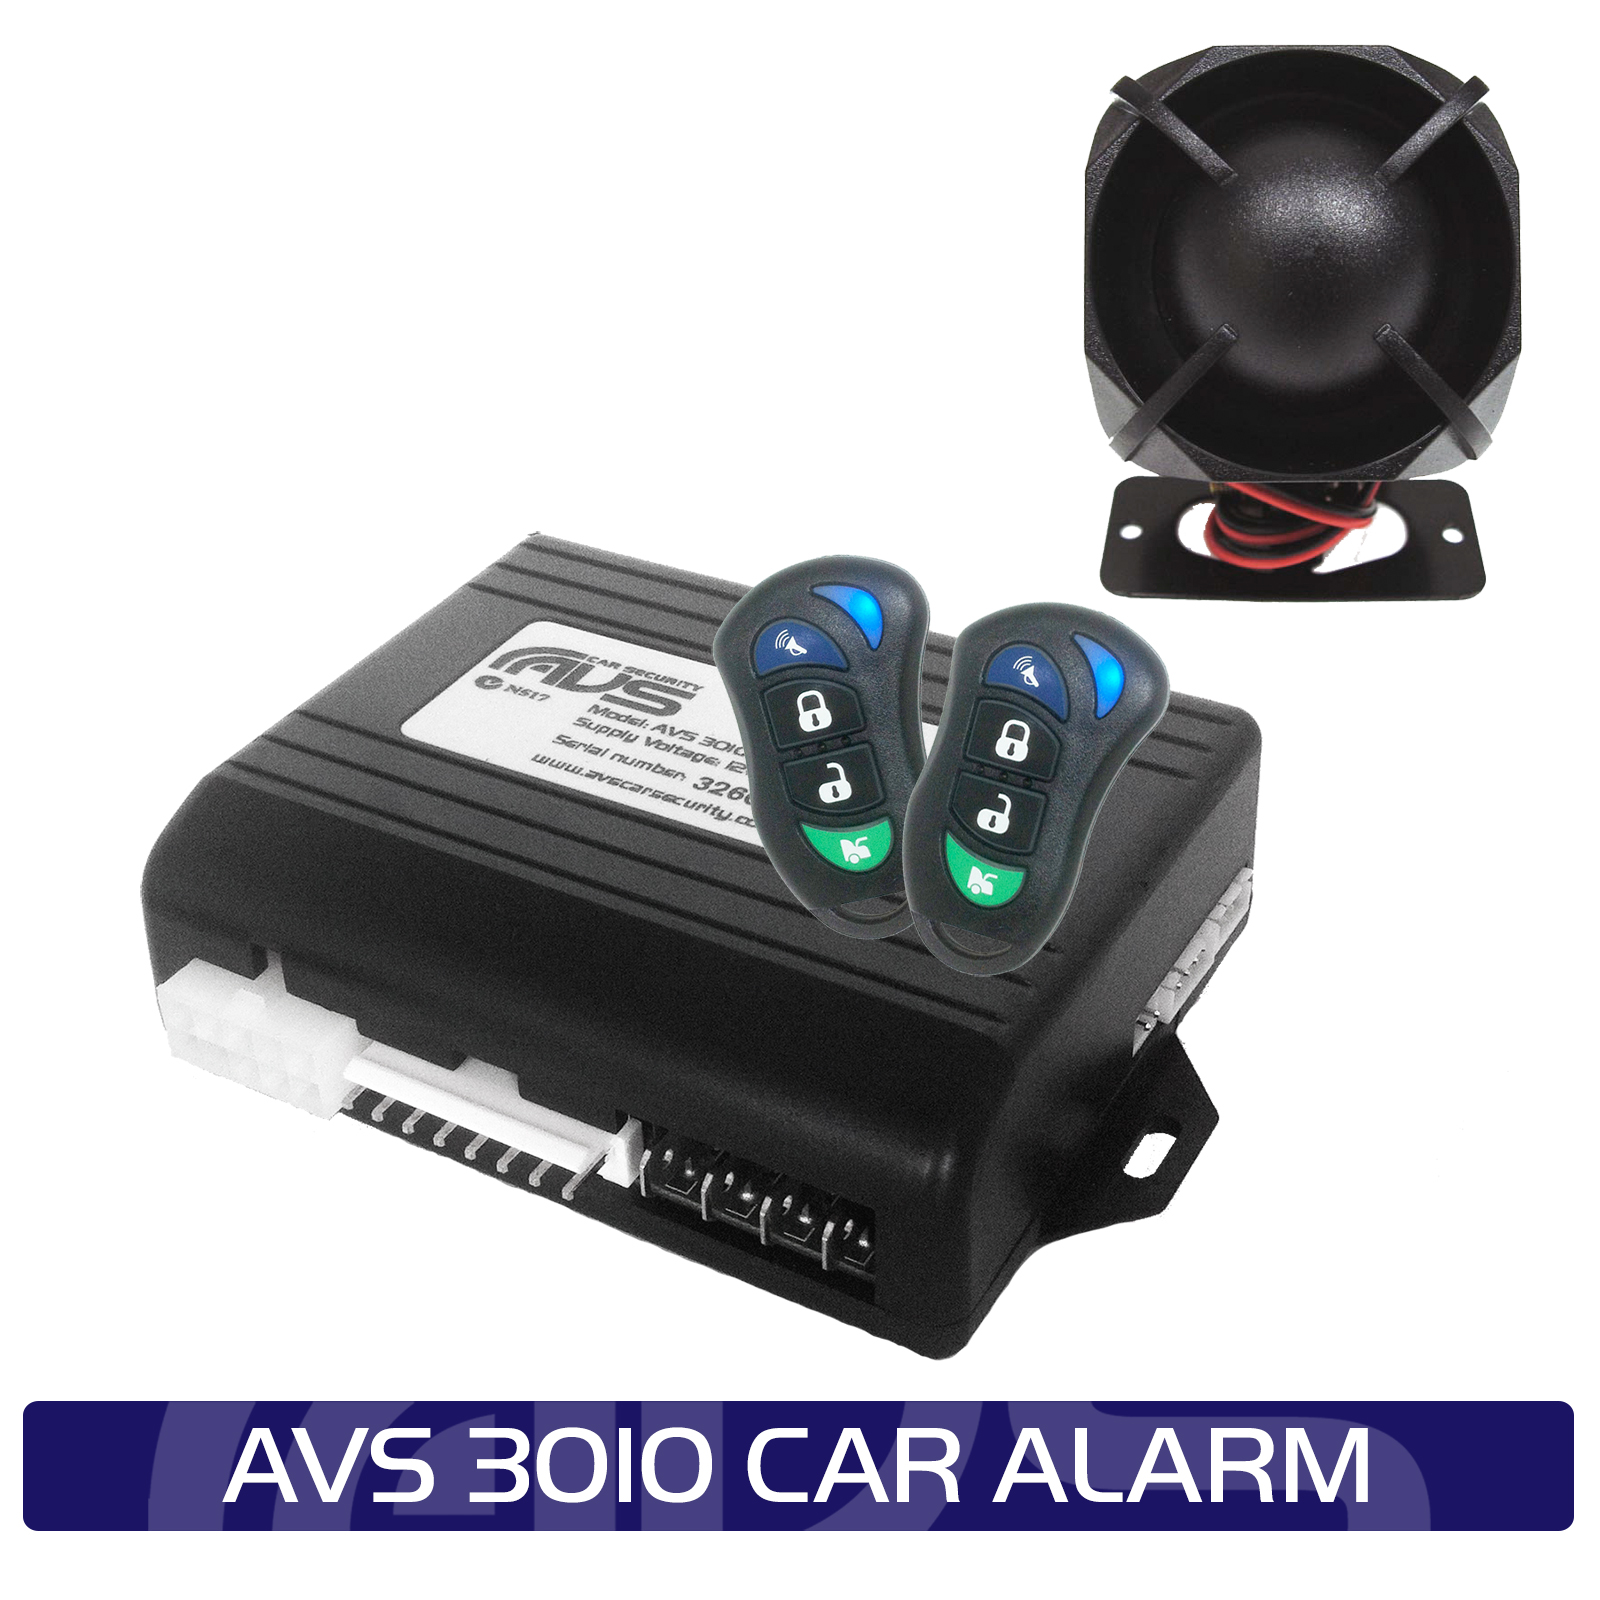 hight resolution of avs 3010 car alarm avs car security 0800 438 862 standard car alarm systems avs car alarm wiring diagram